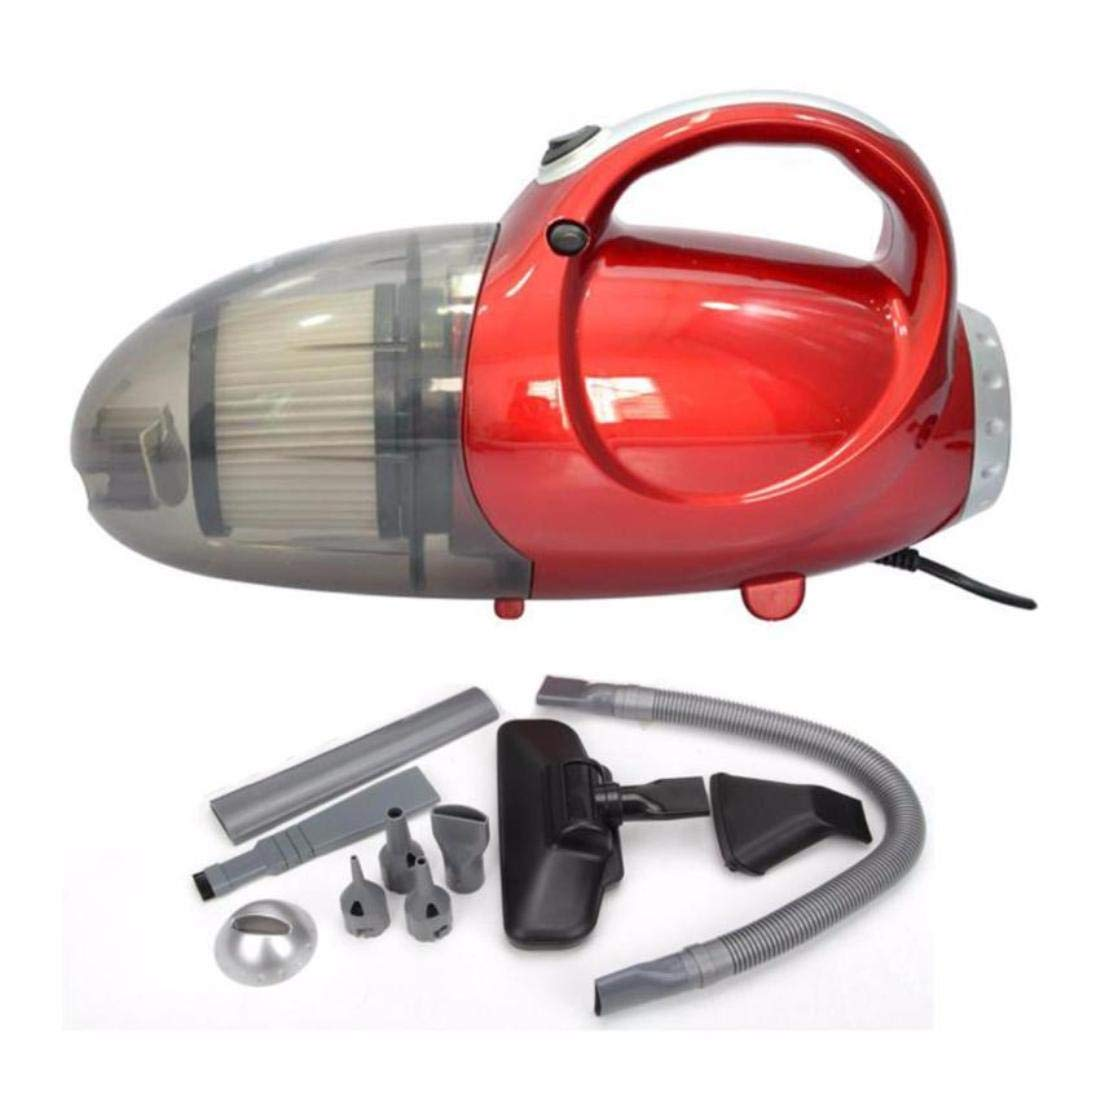 Easymart Hand-held Vacuum Cleaner